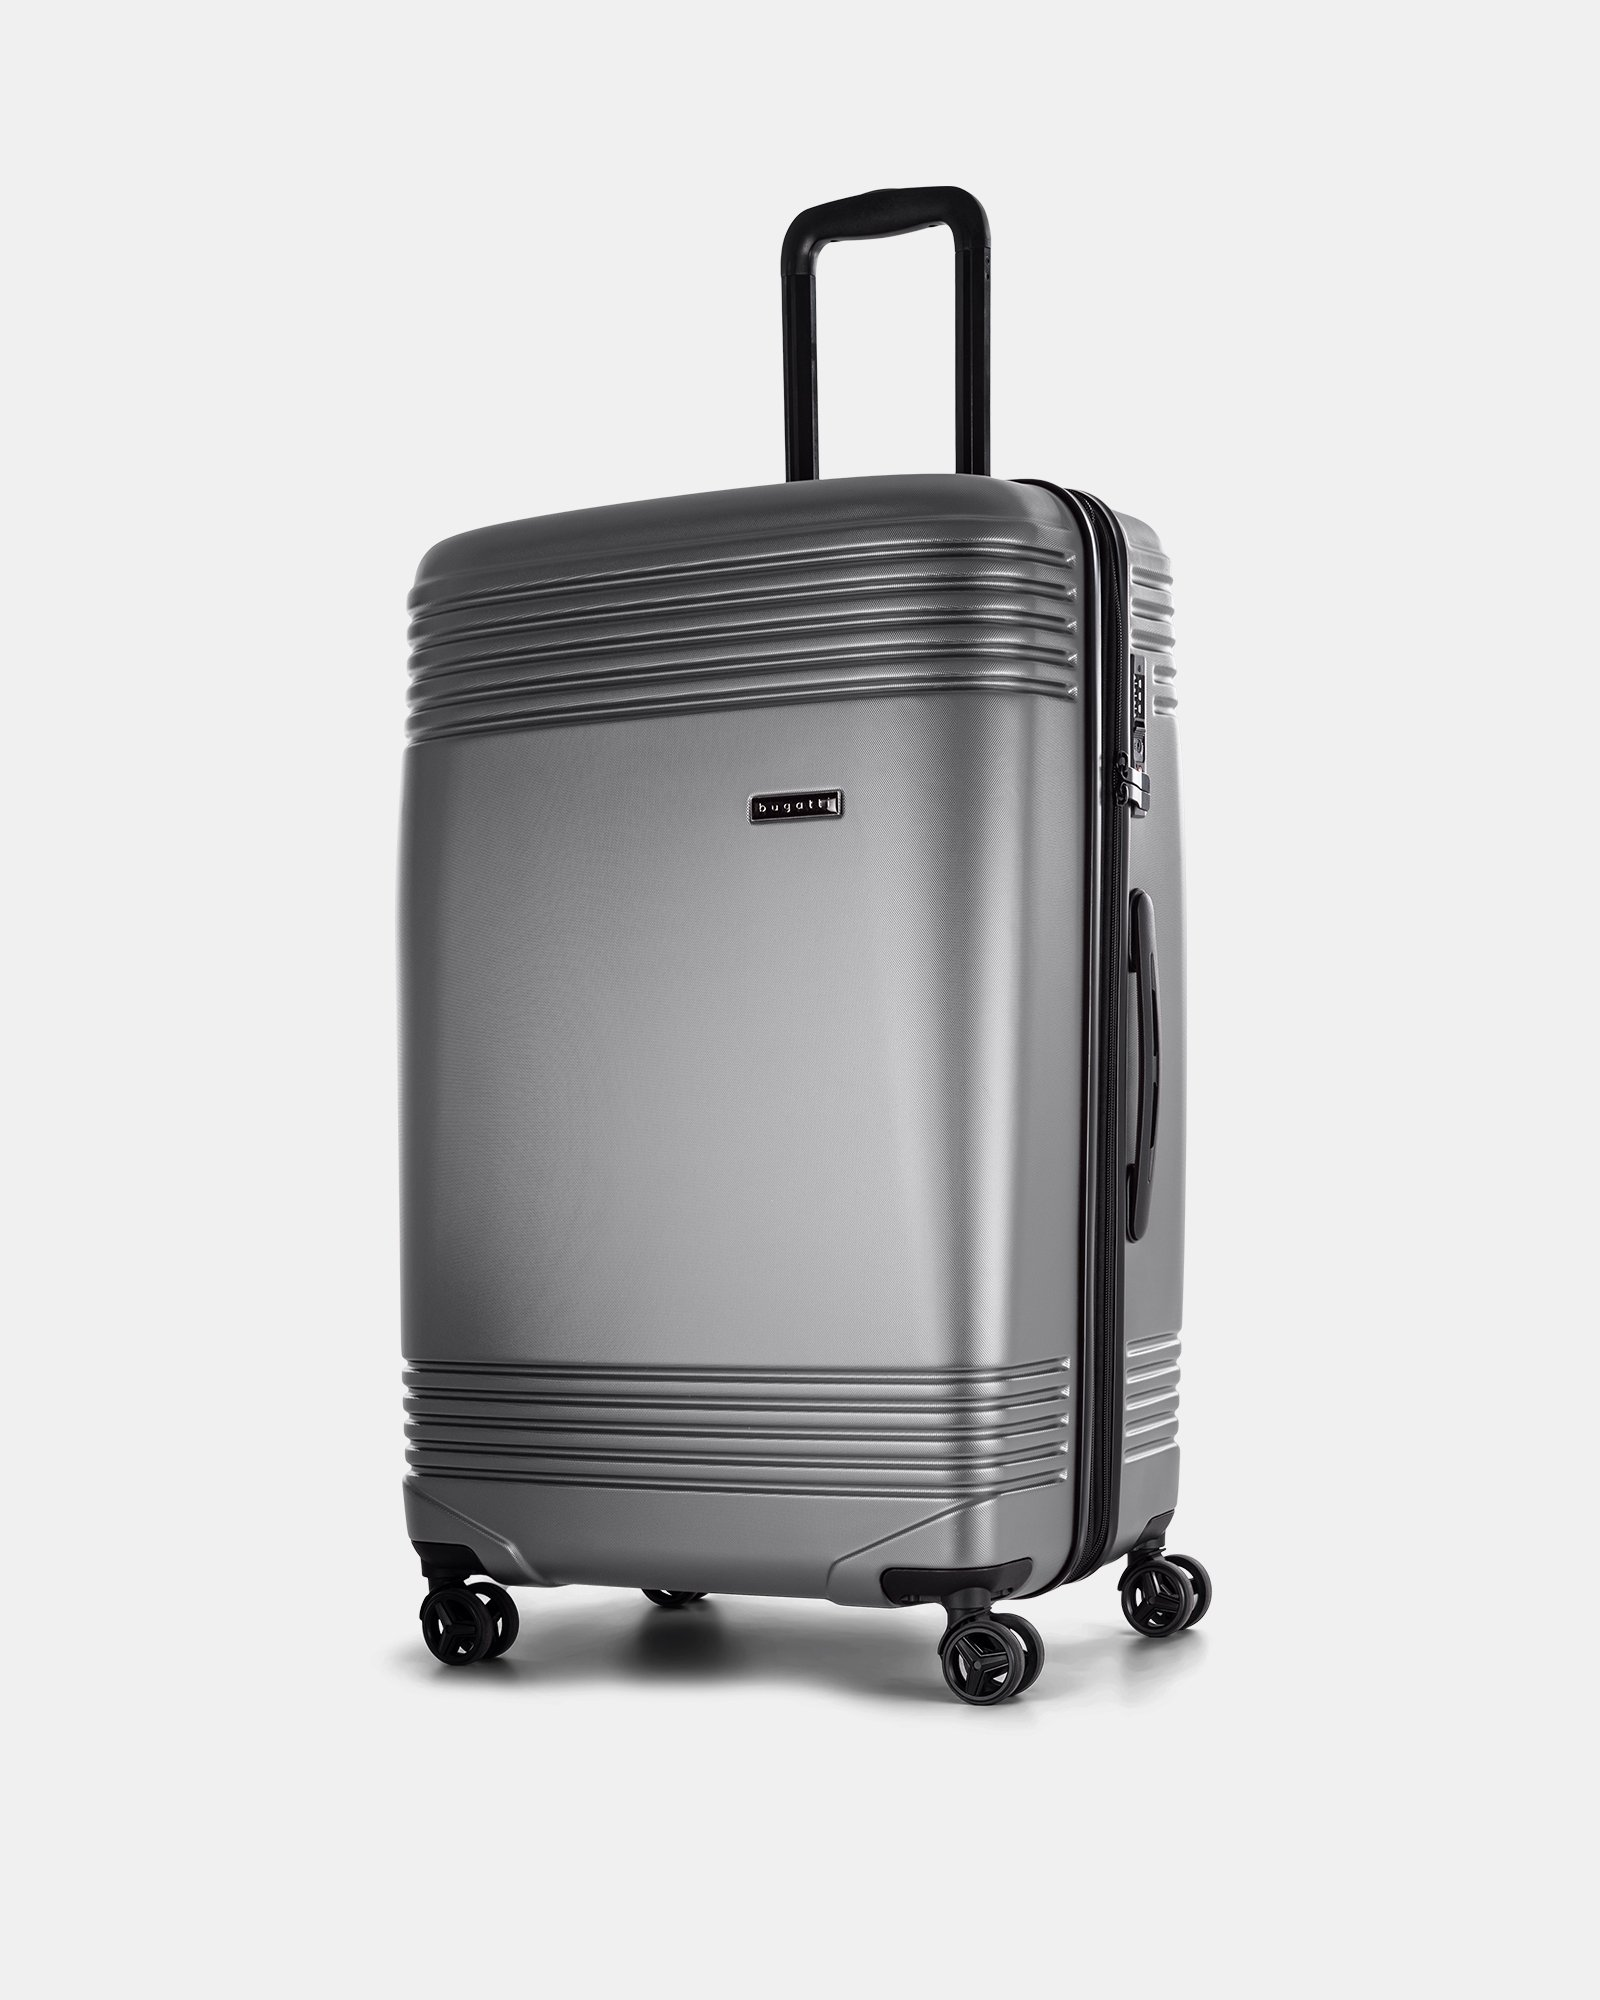 "NASHVILLE - 30"" HARDSIDE LUGGAGE in 100% recycled plastic with TSA lock - Charcoal - Bugatti - Zoom"